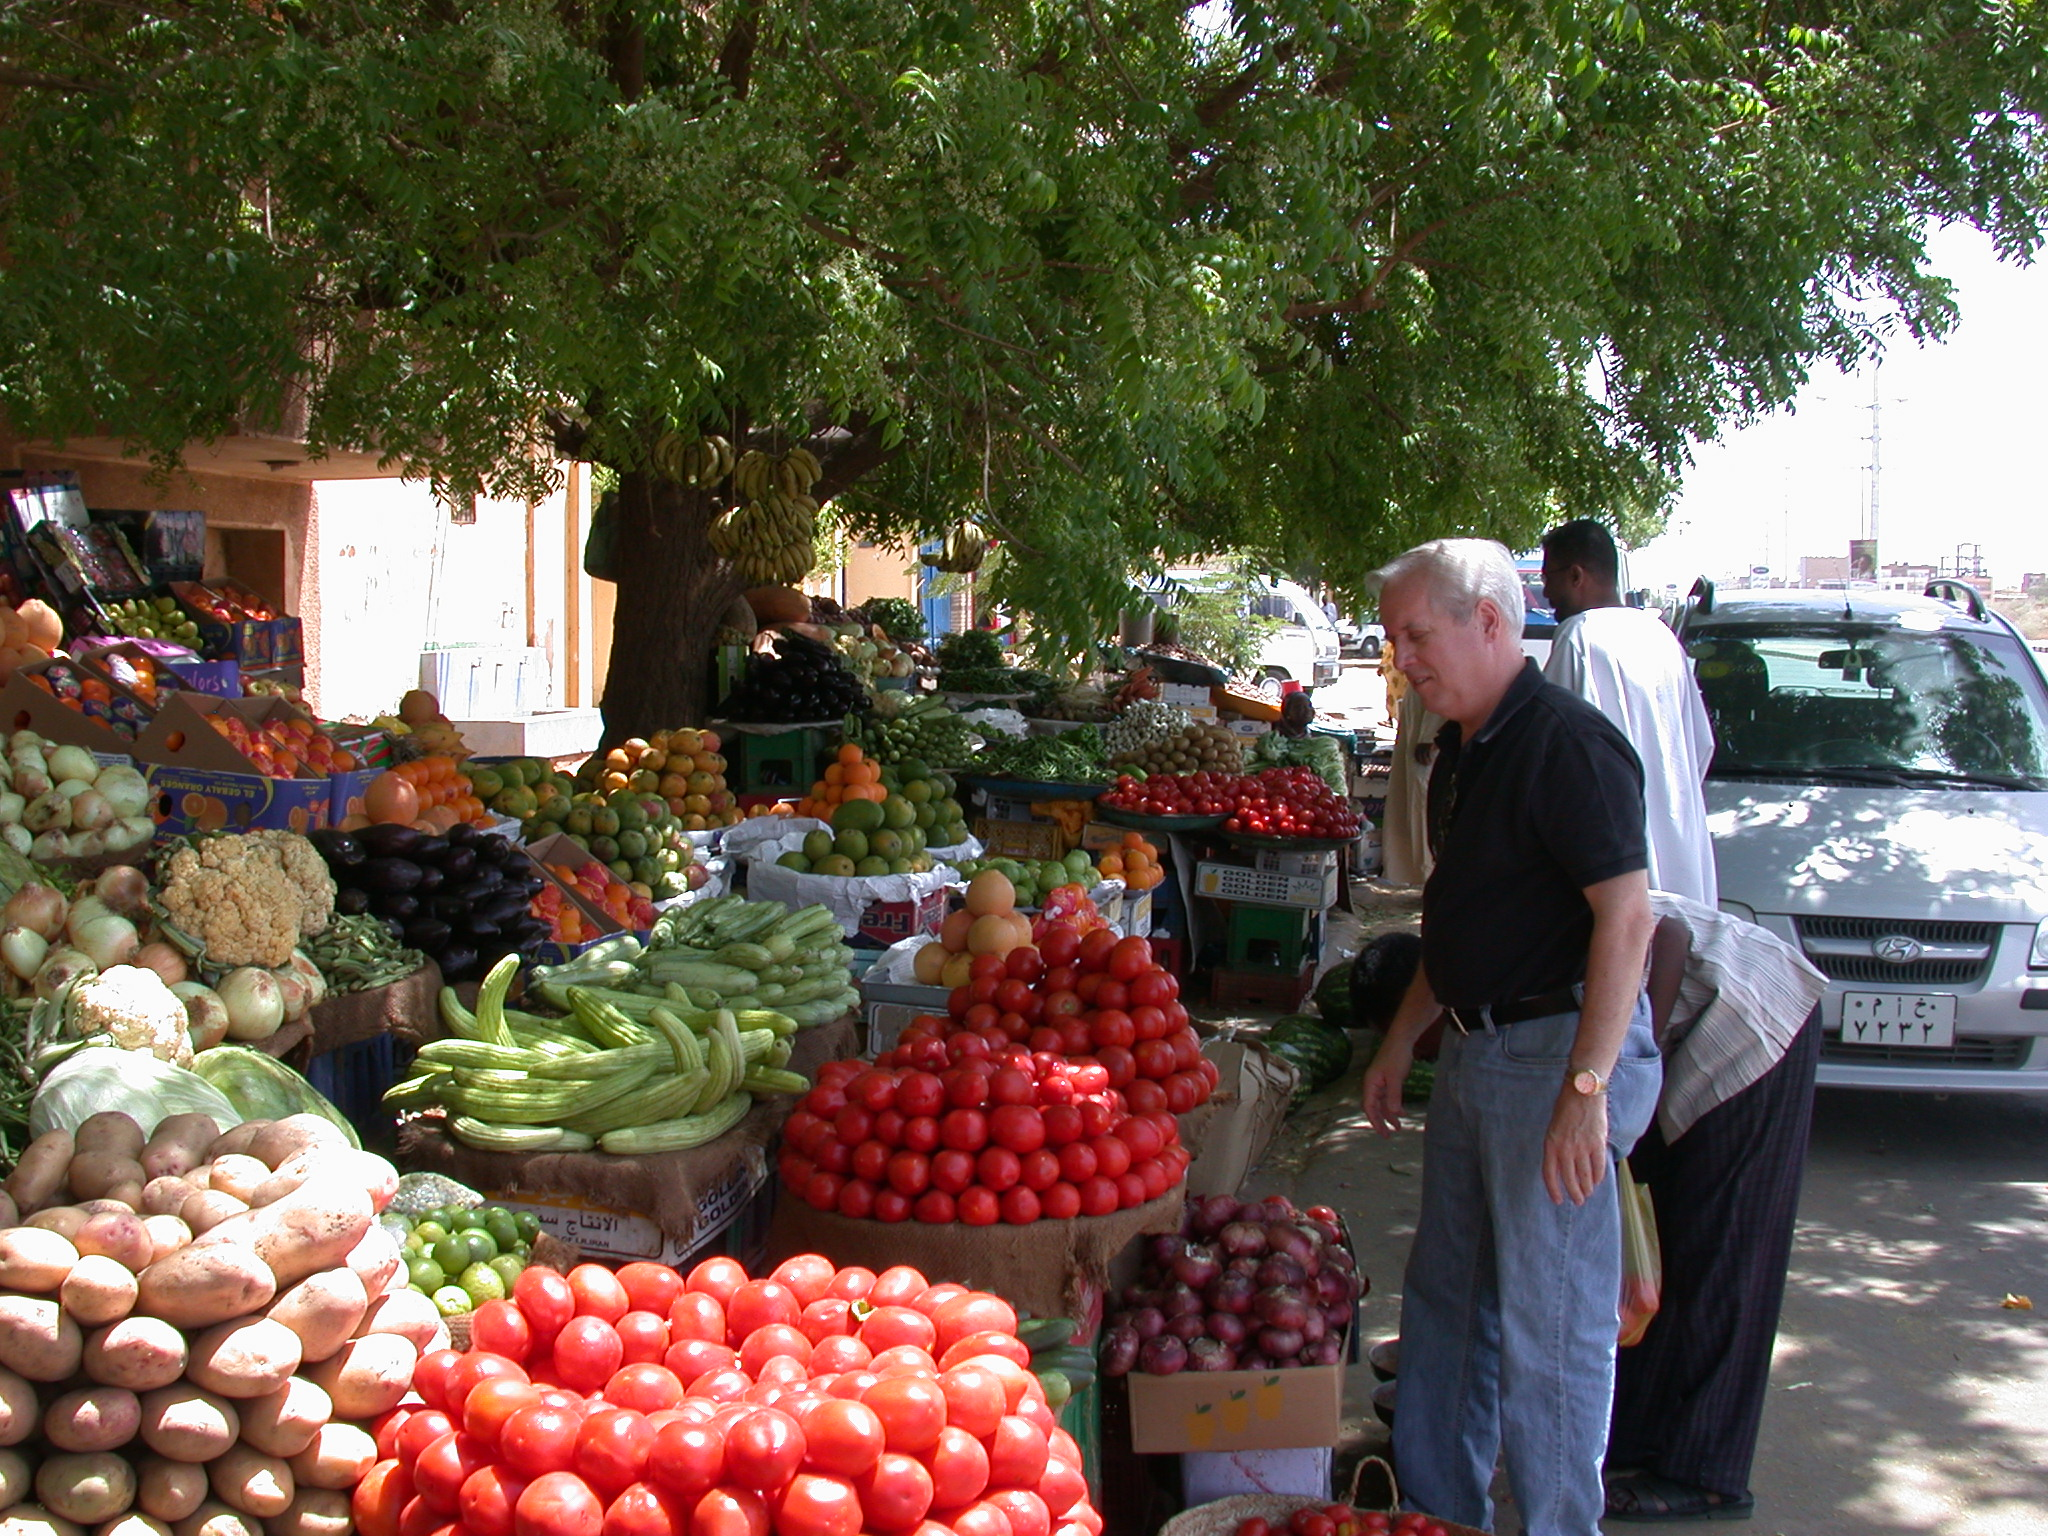 Phil at Fruit and Vegetable Stands, Khartoum, Sudan